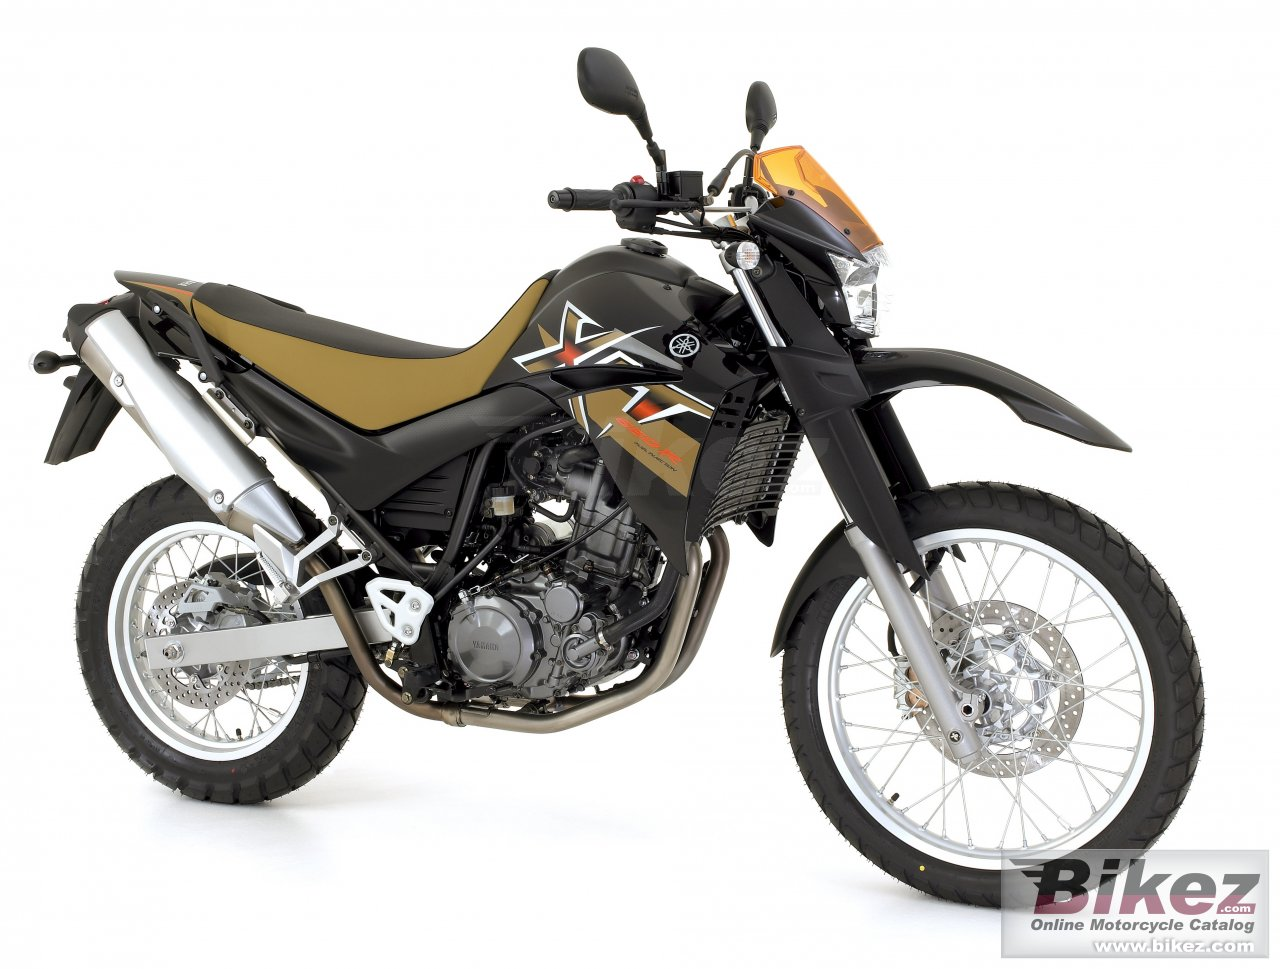 Big Yamaha xt 660 r picture and wallpaper from Bikez.com